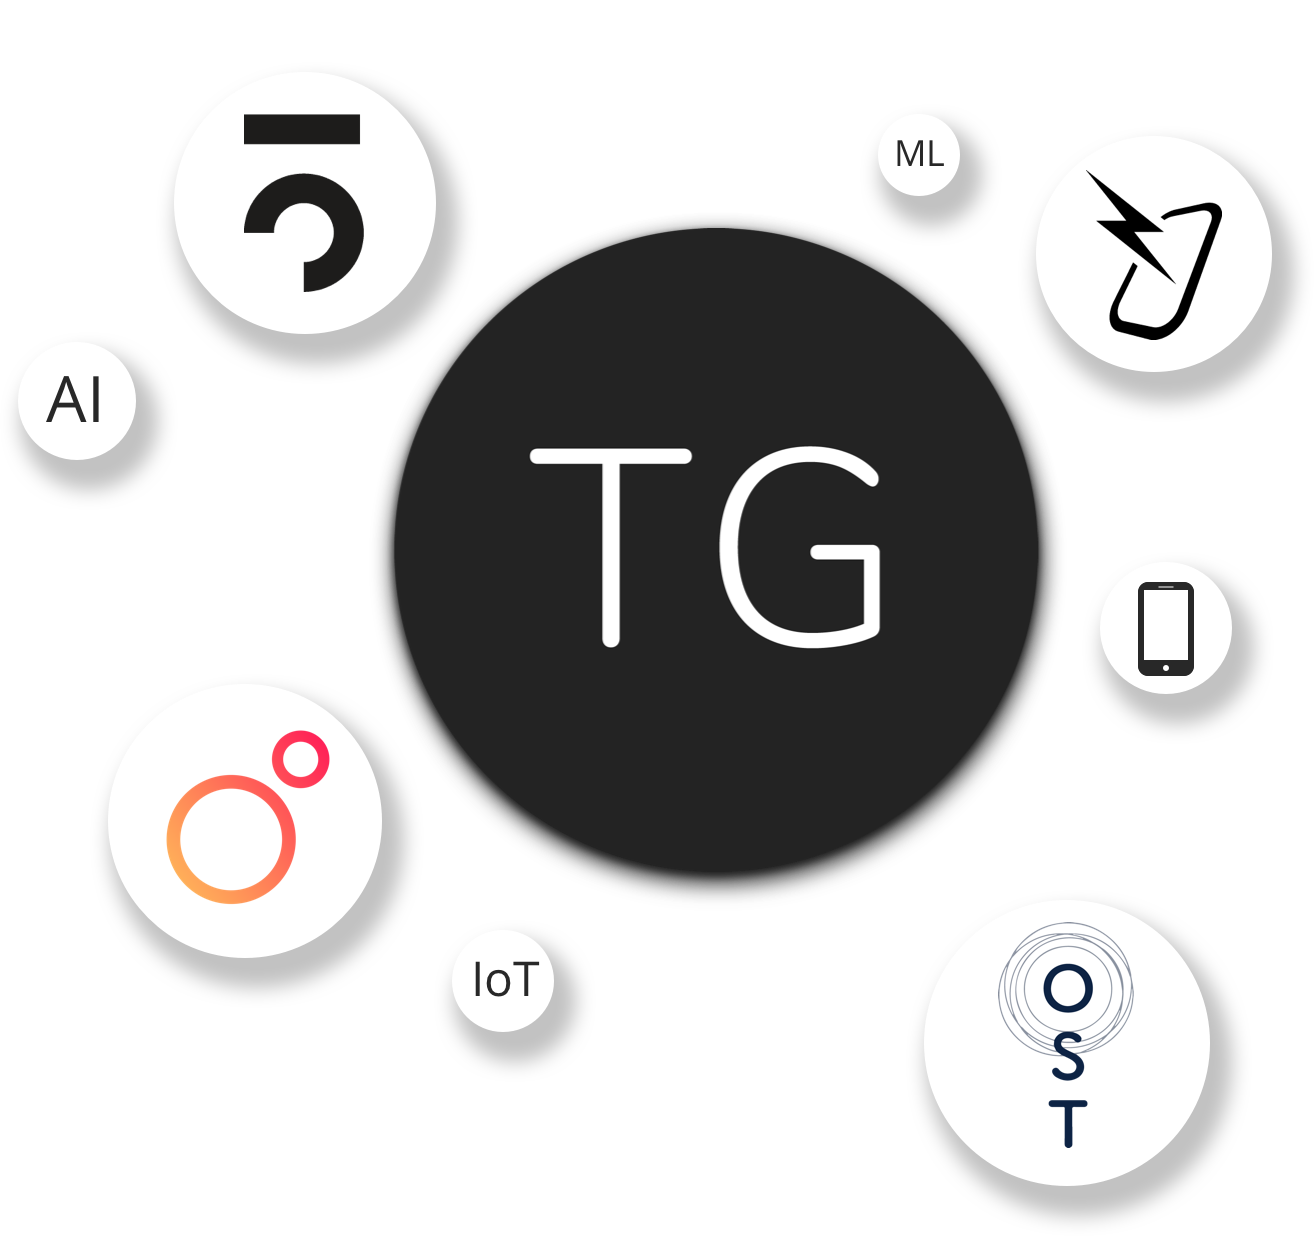 ThisGroup IoT ecosystem